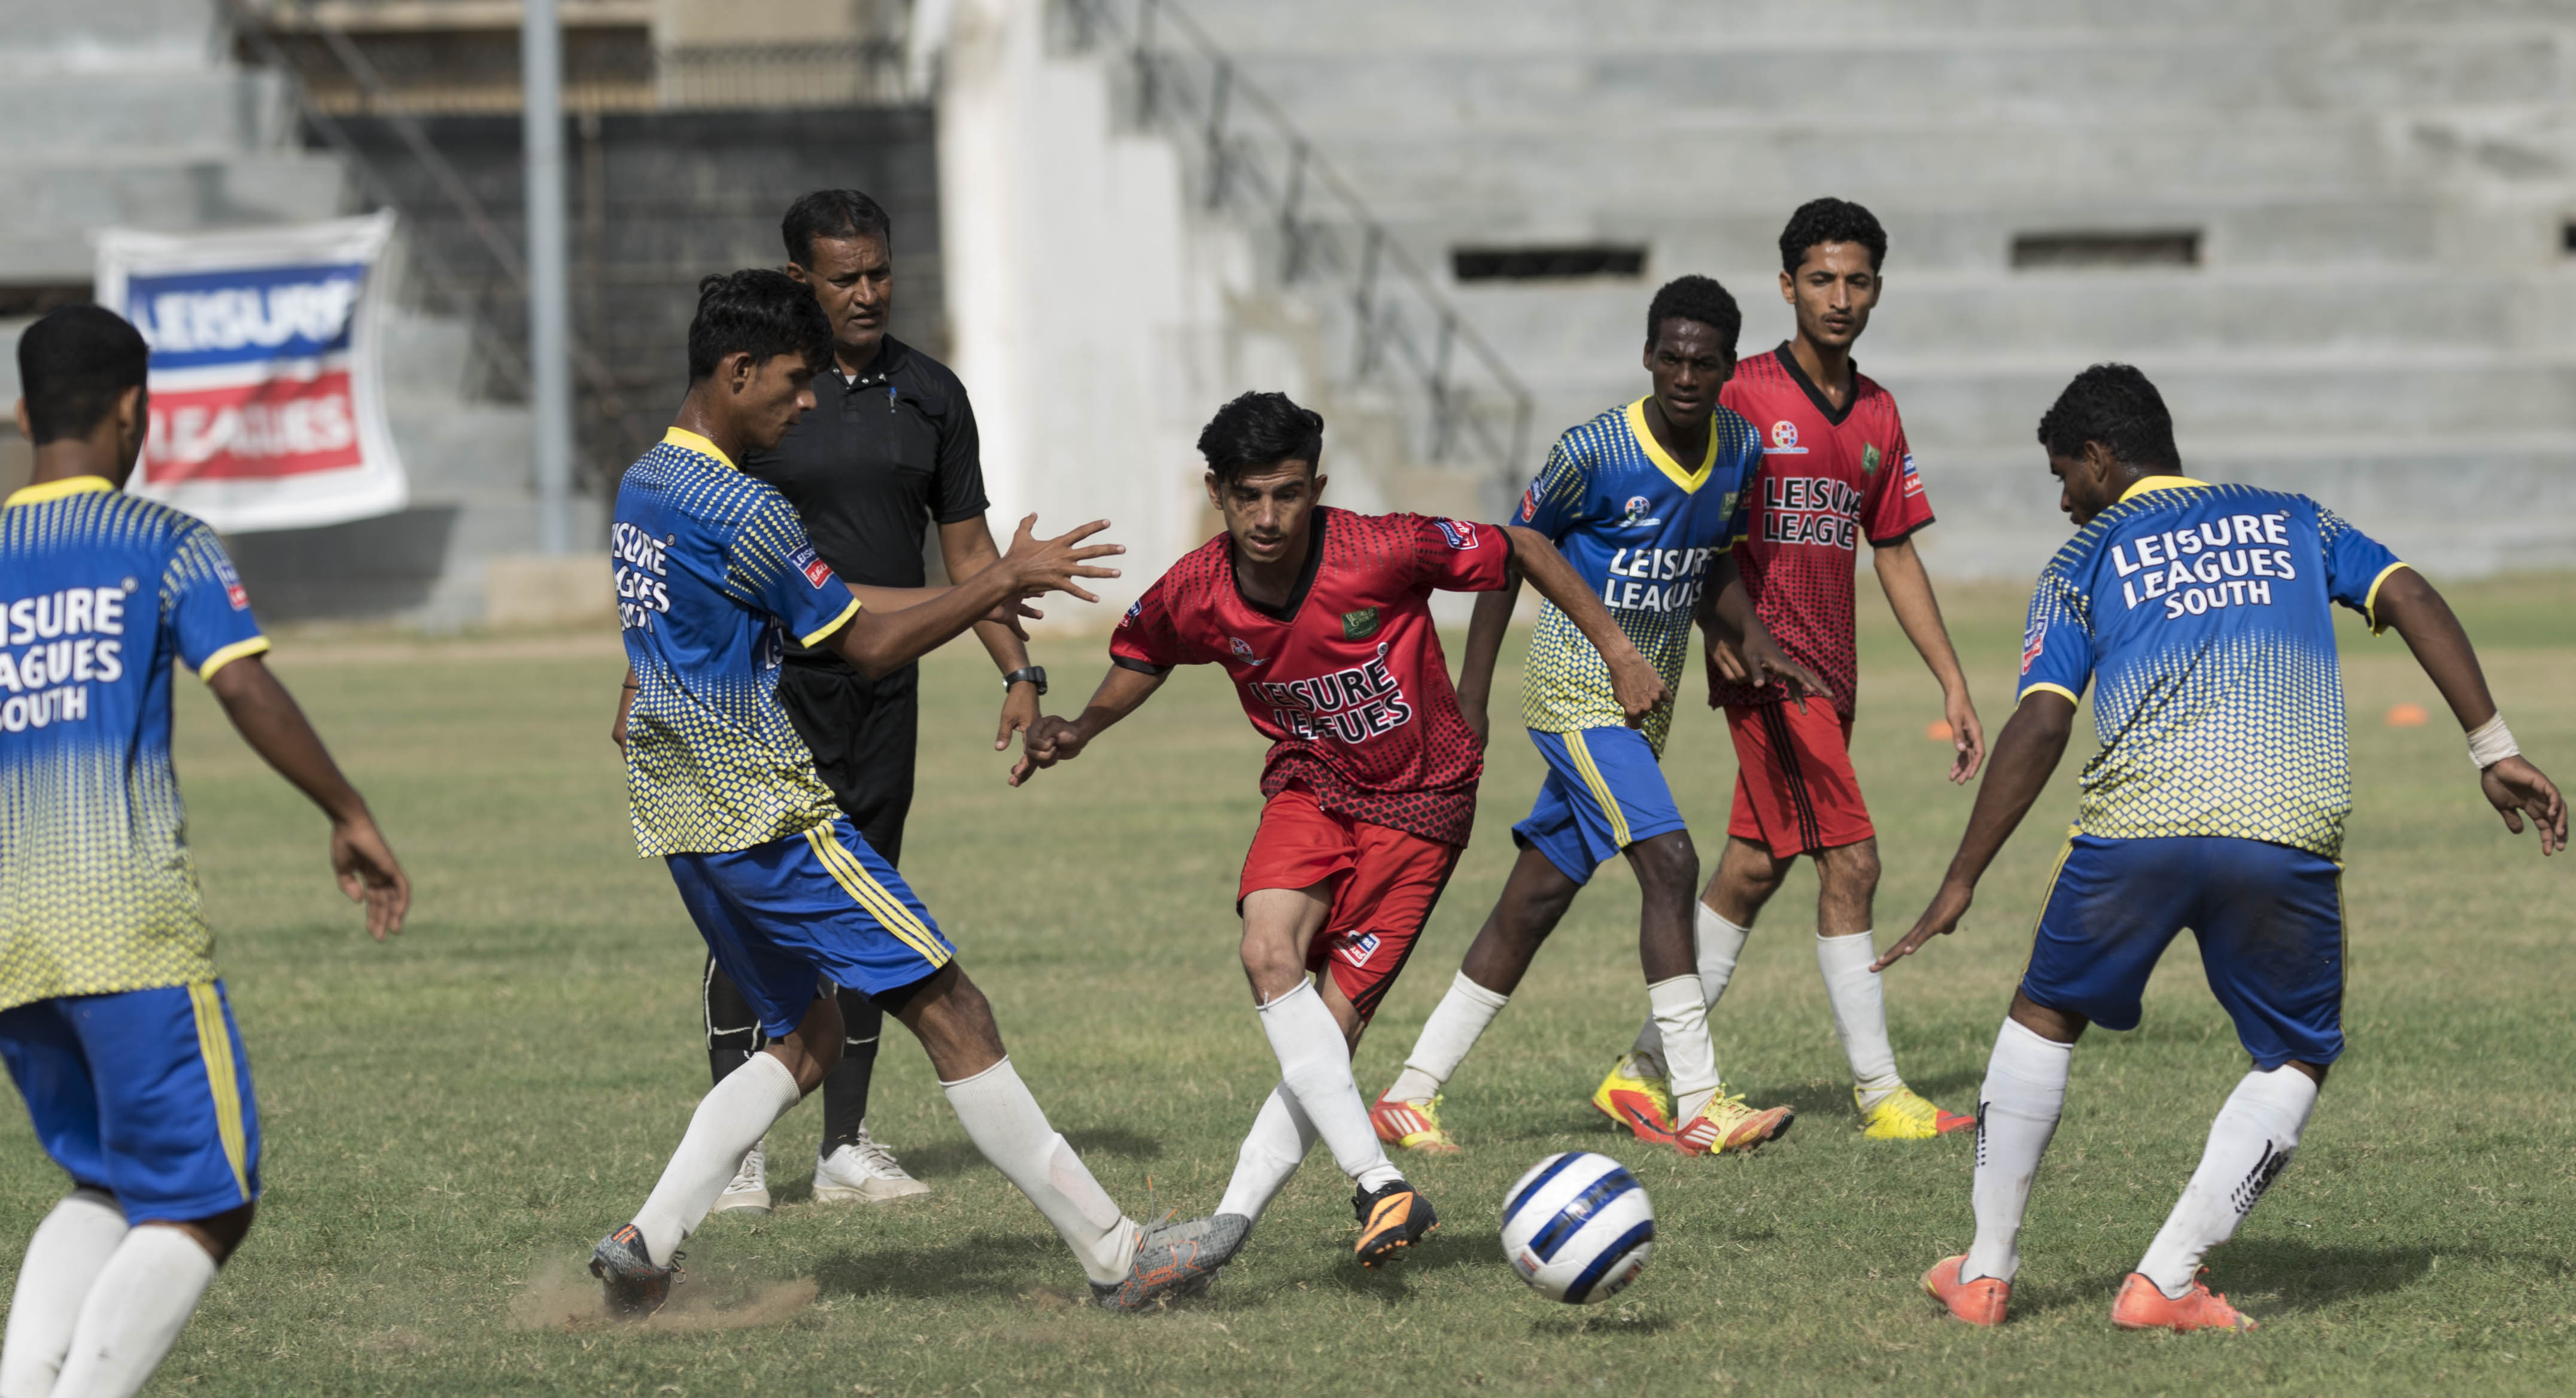 Khyber Muslim clinches Leisure Leagues Karachi Youth Initiative Football Championship title